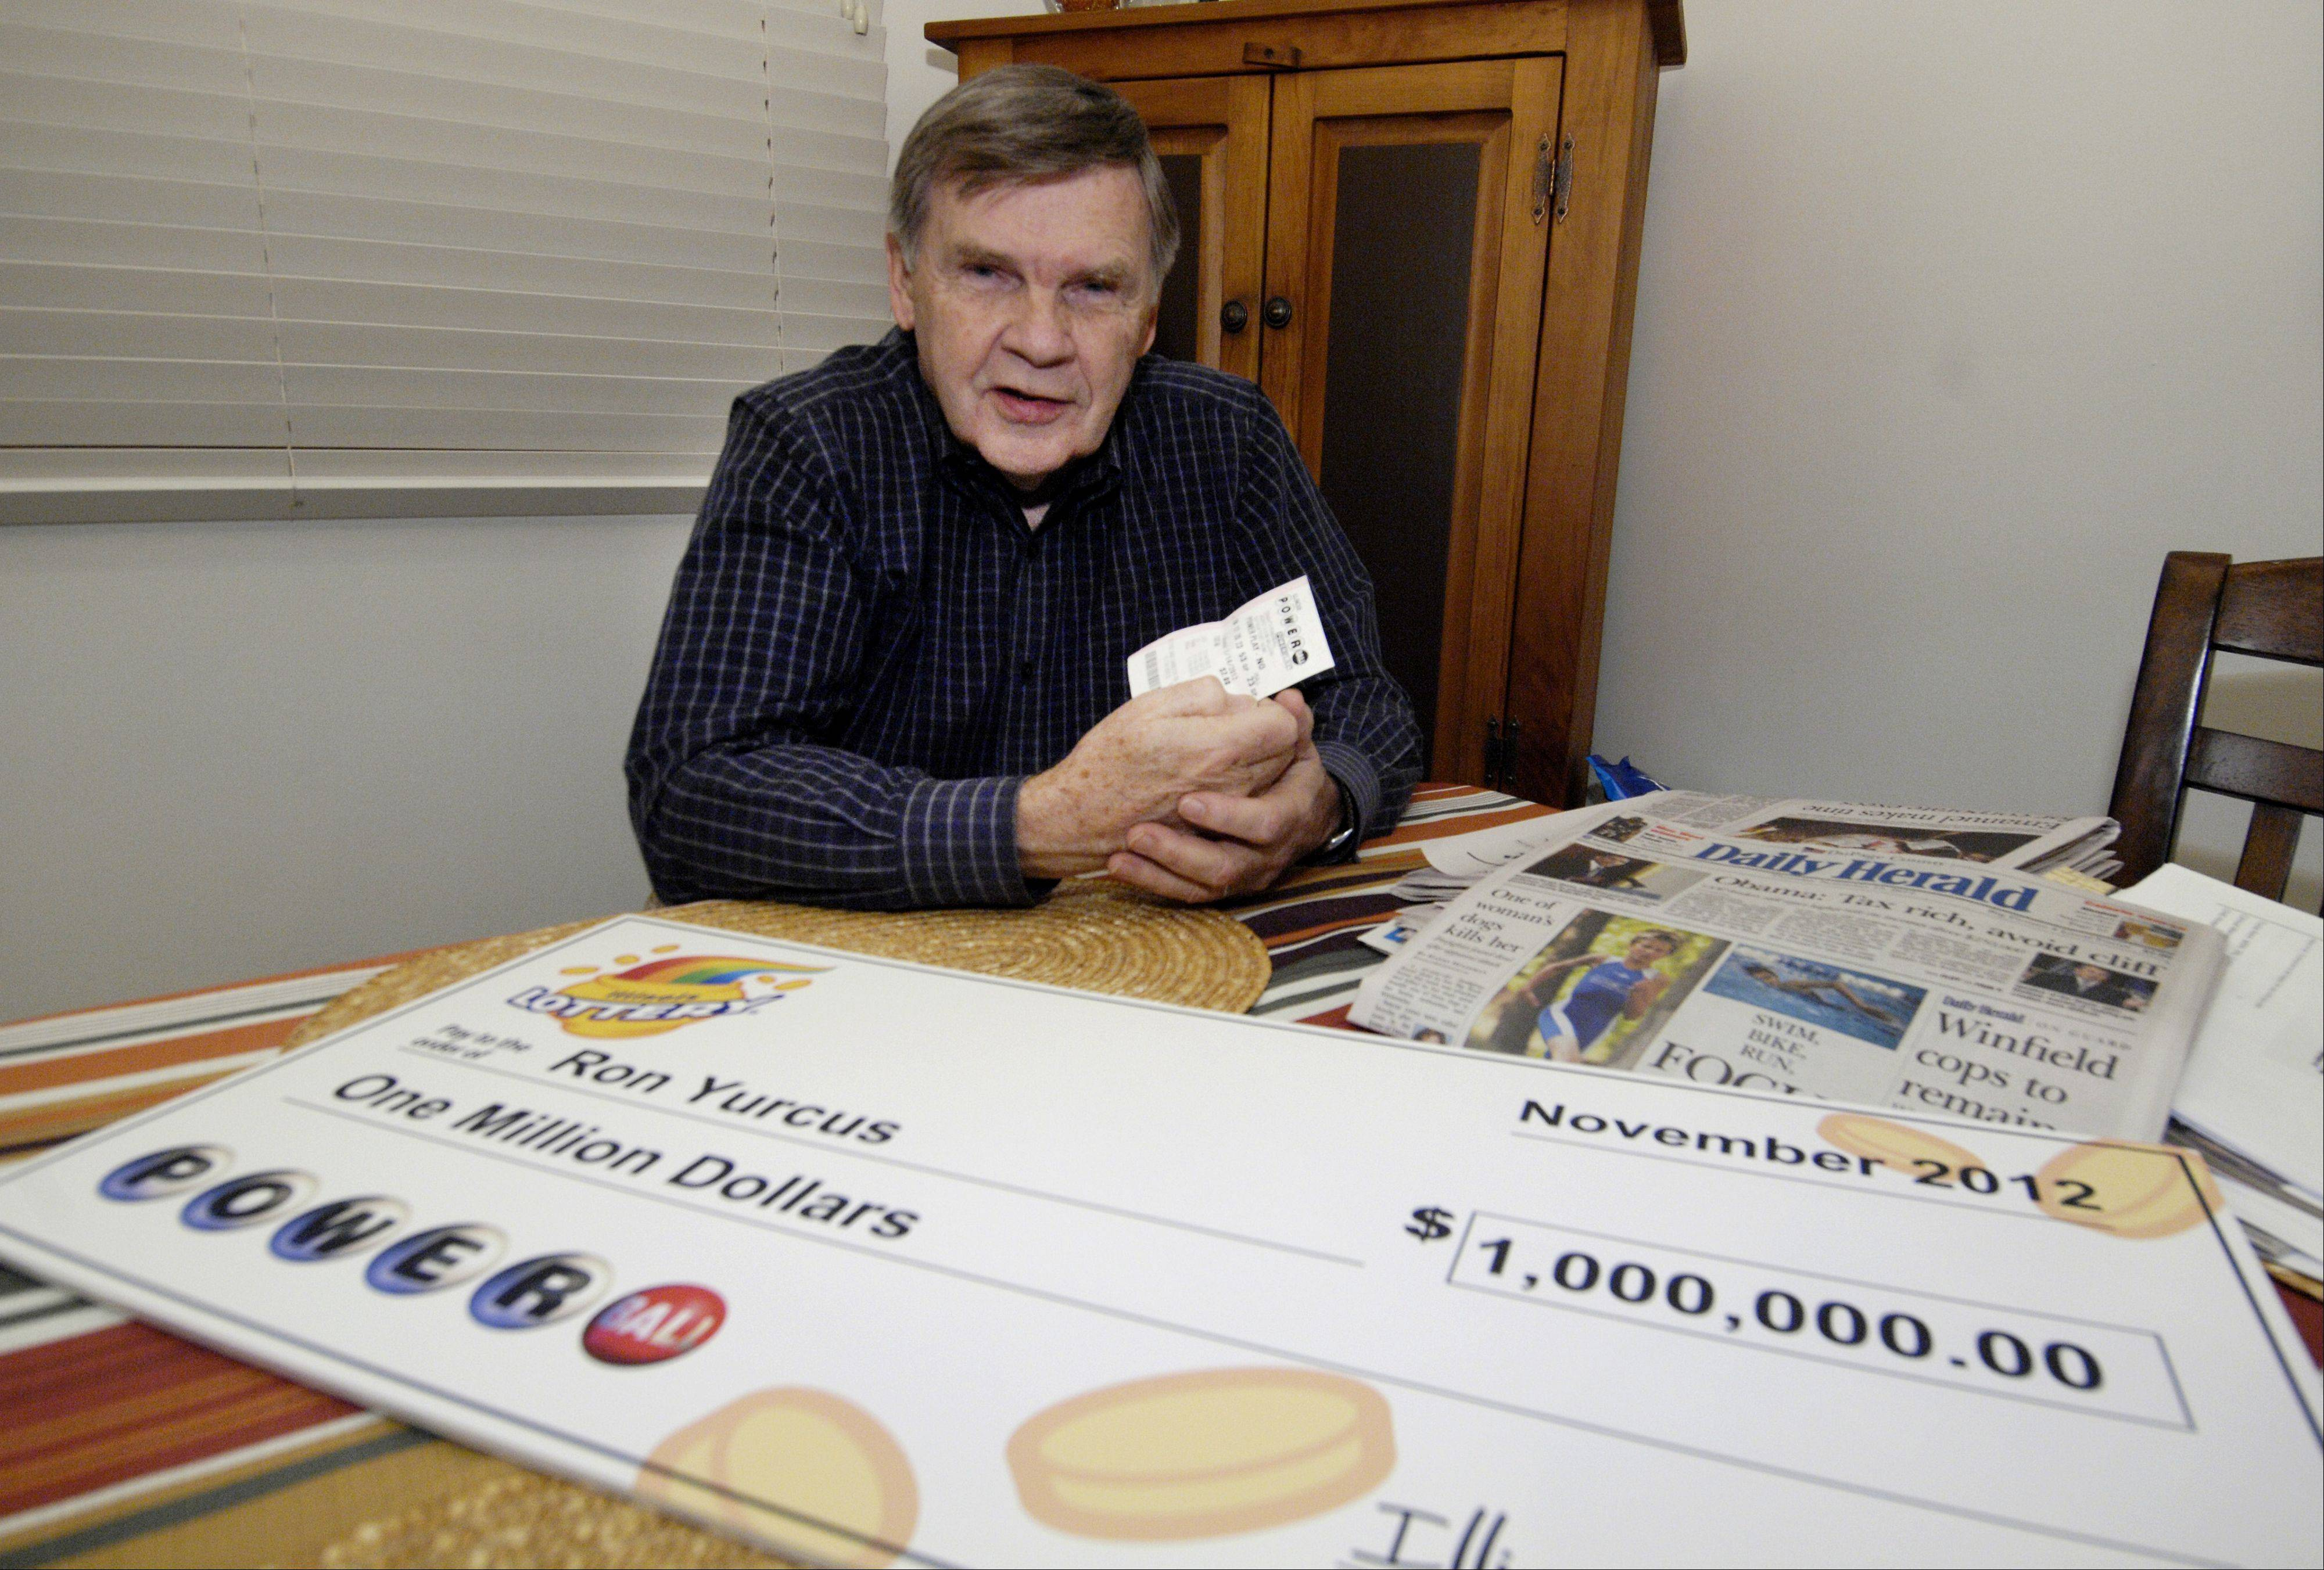 Ron Yurcus of Glen Ellyn won $1 million by matching five of the six numbers on a Powerball ticket. Yurcus found the two-month-old ticket while cleaning up his desk.